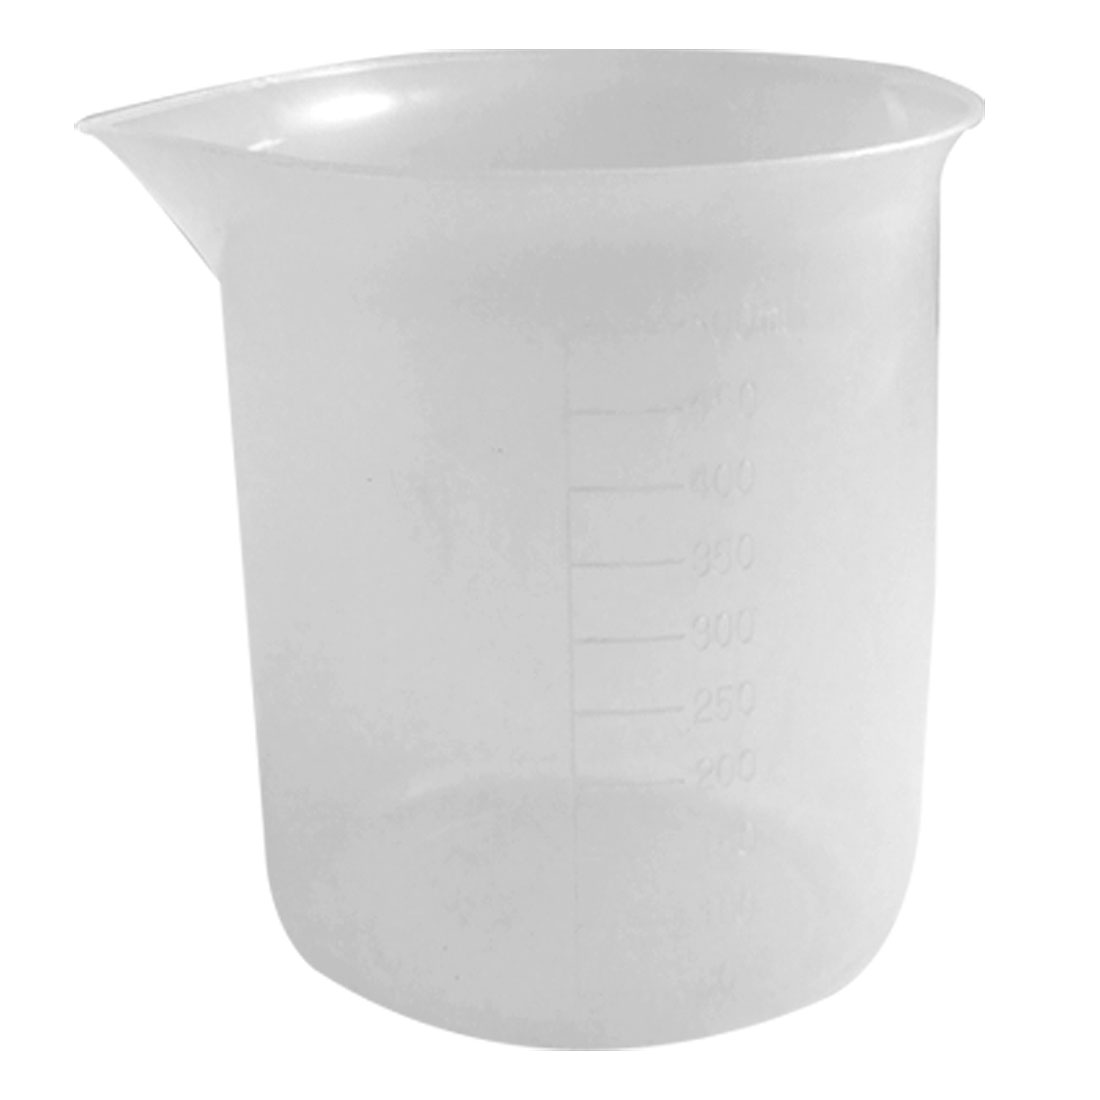 Laboratory Measurements Transparent Plastic Graduated Cup Beaker 500mL